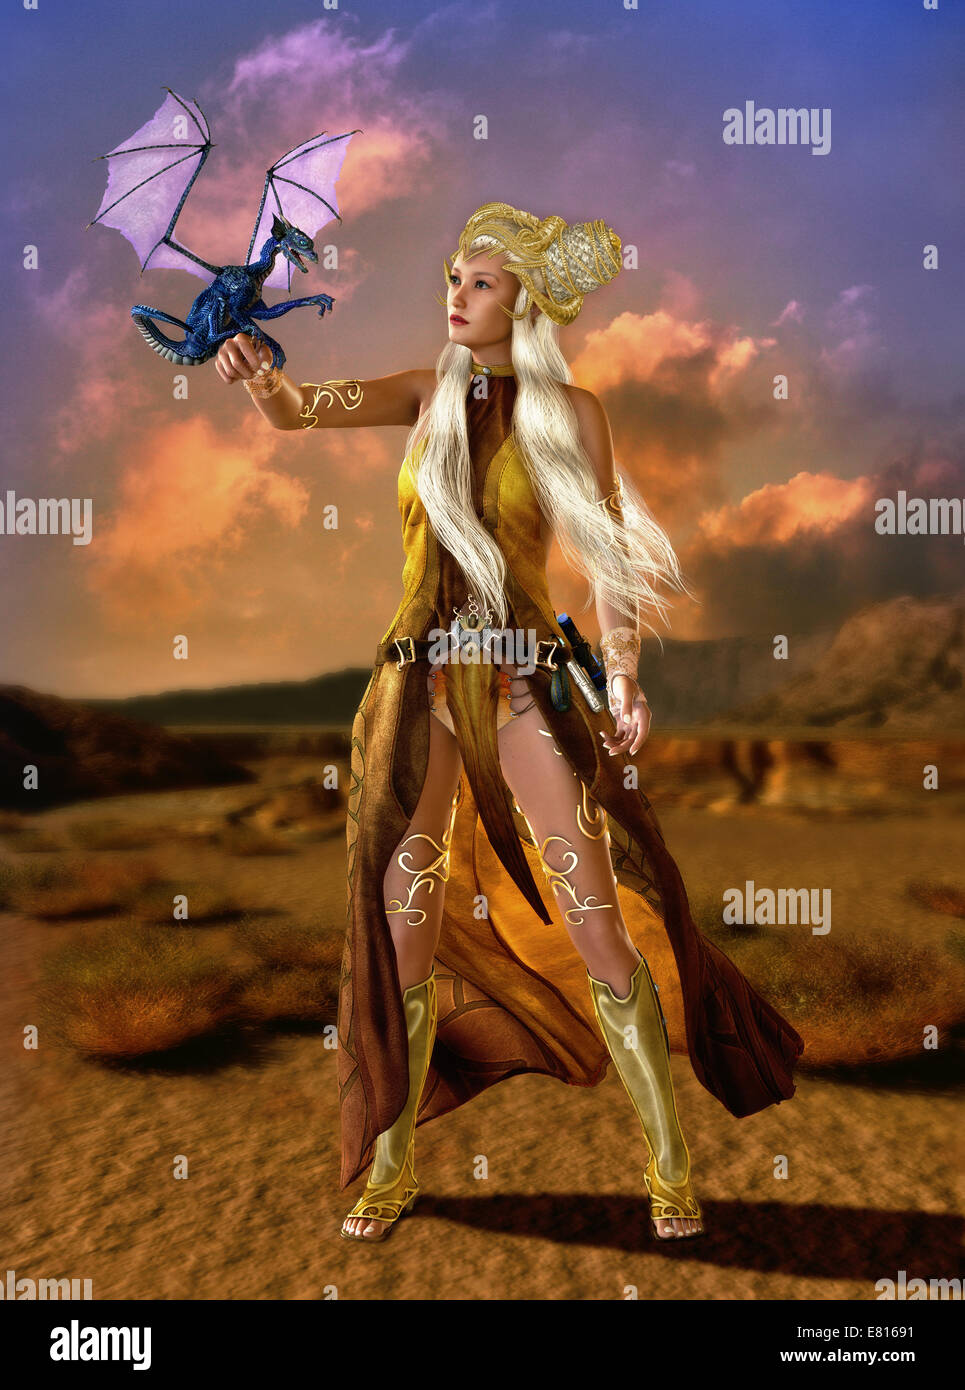 lady with fantasy hairstyle and fantasy clothes with a dragon cub on the arm - Stock Image